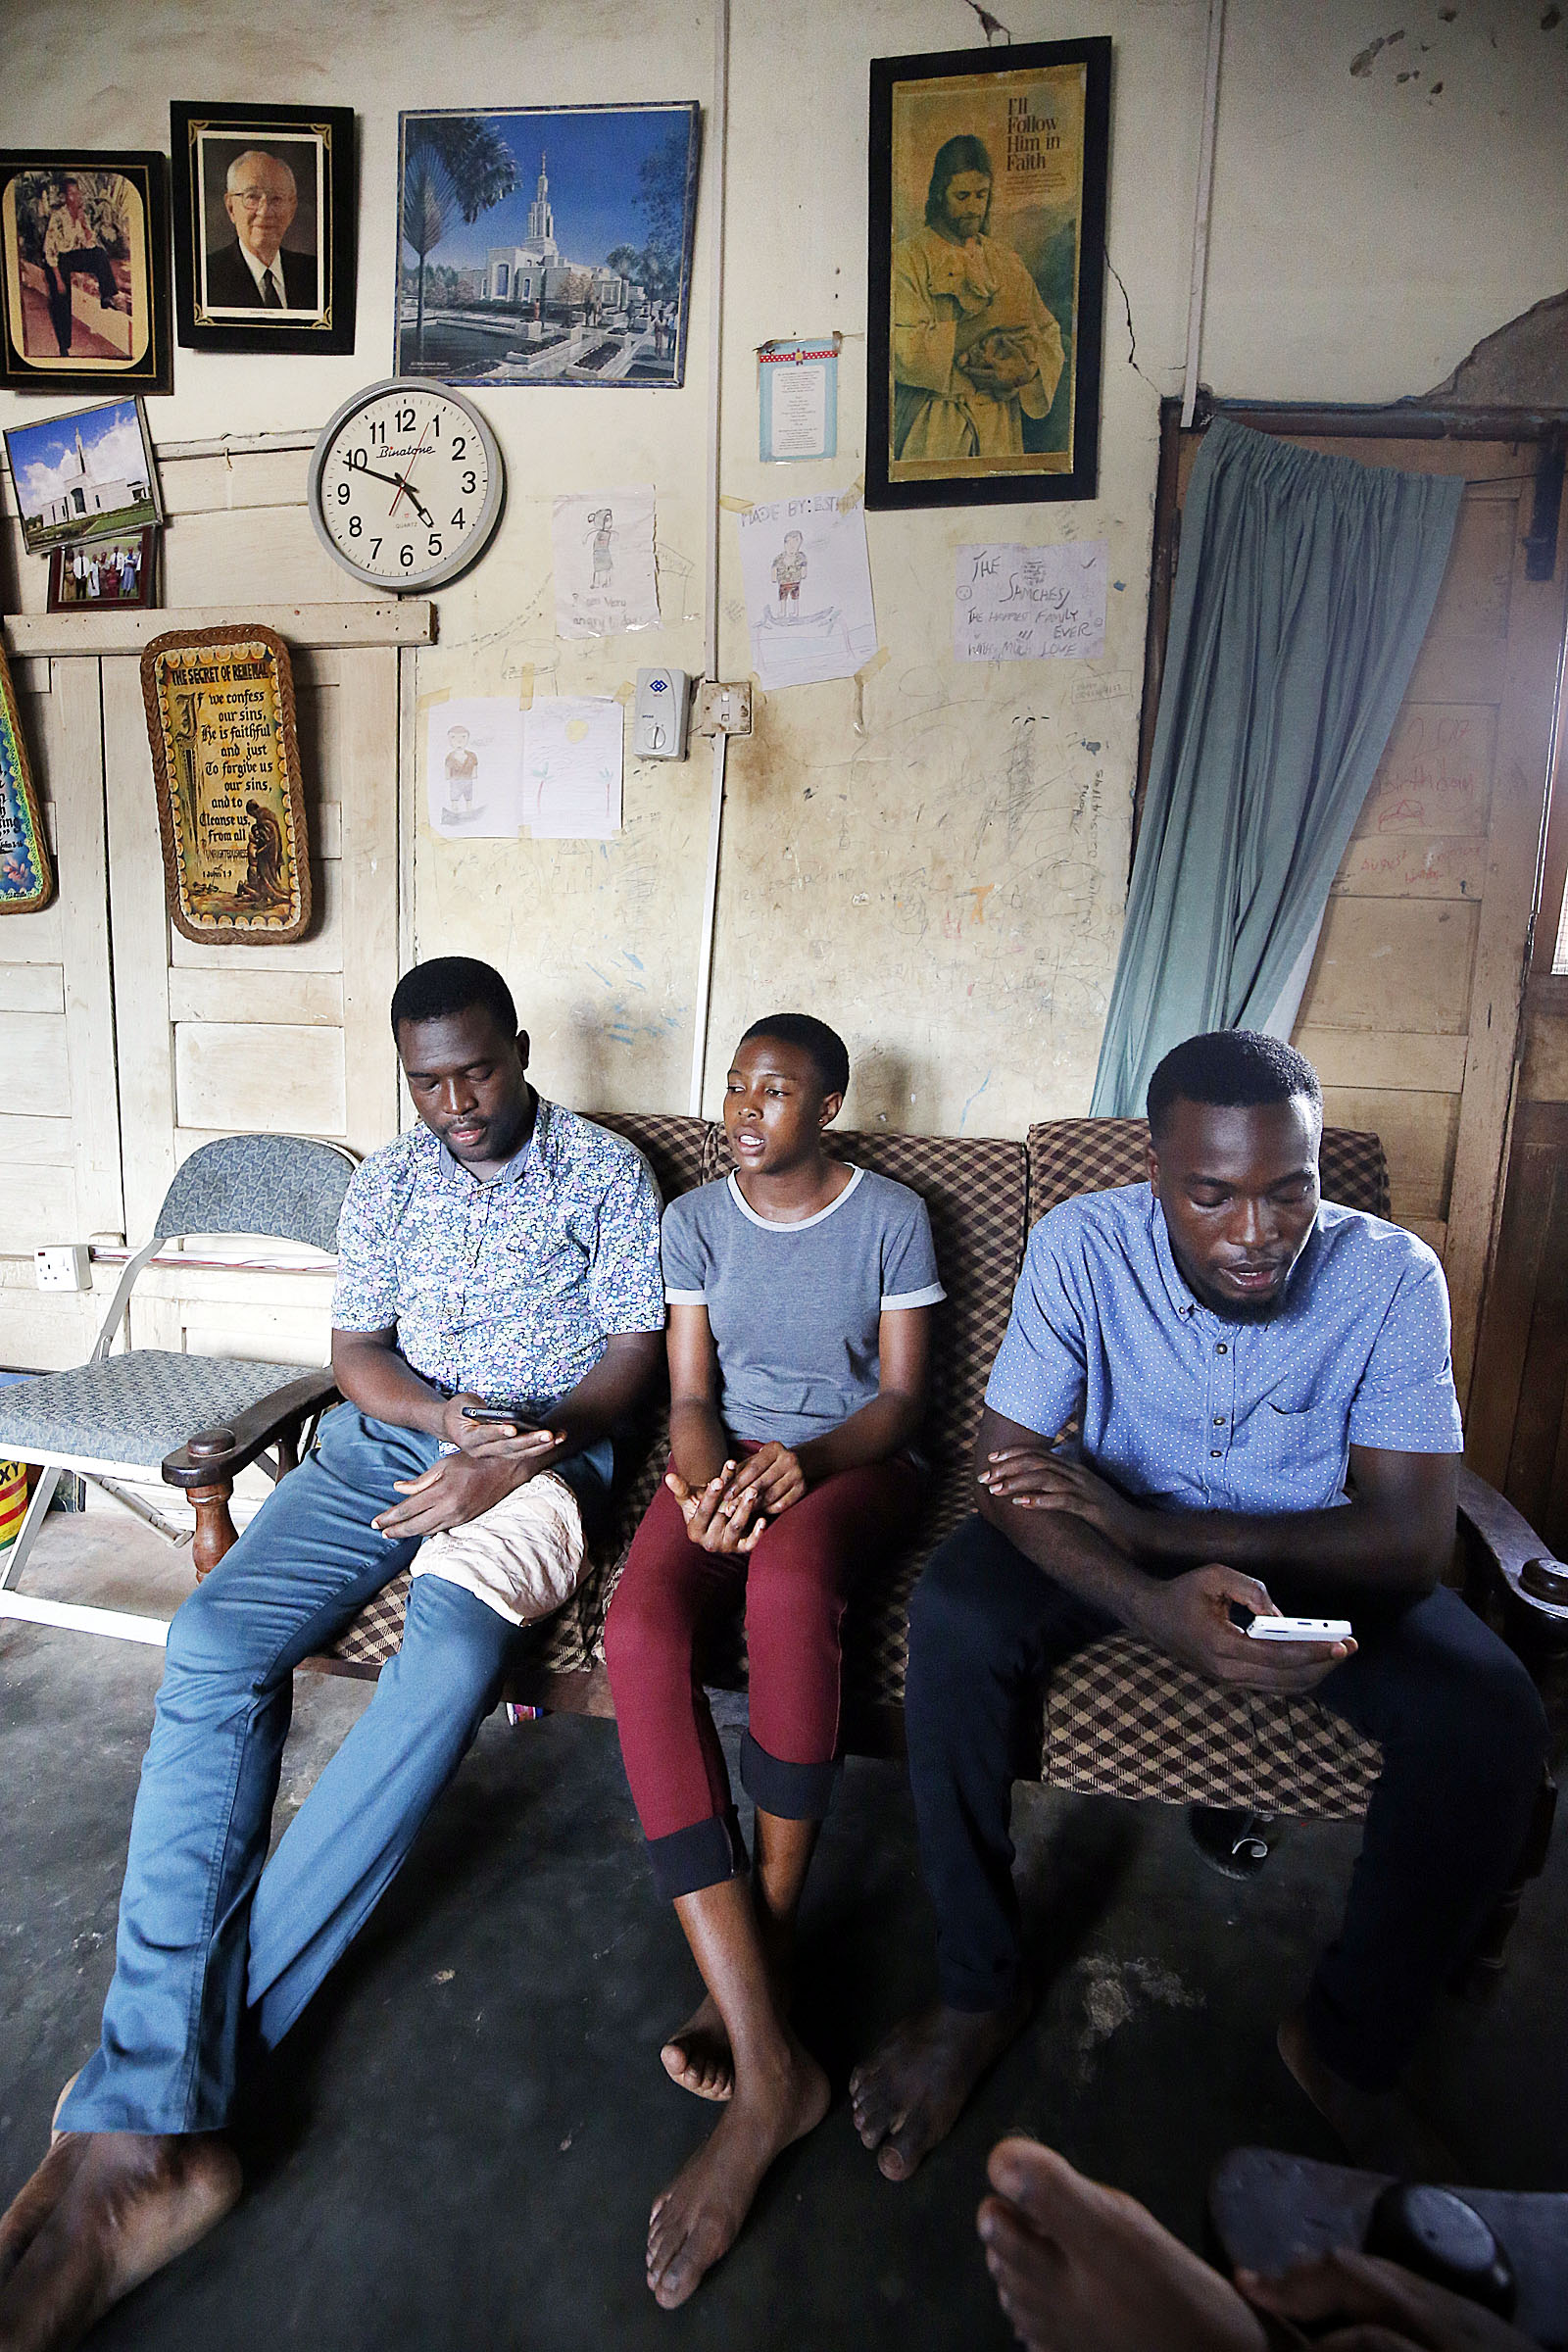 Simmons, left, Dora and Martin Samche sing together before studying scriptures as a family at their home in Kumasi, Ghana, on Saturday, April 21, 2018.